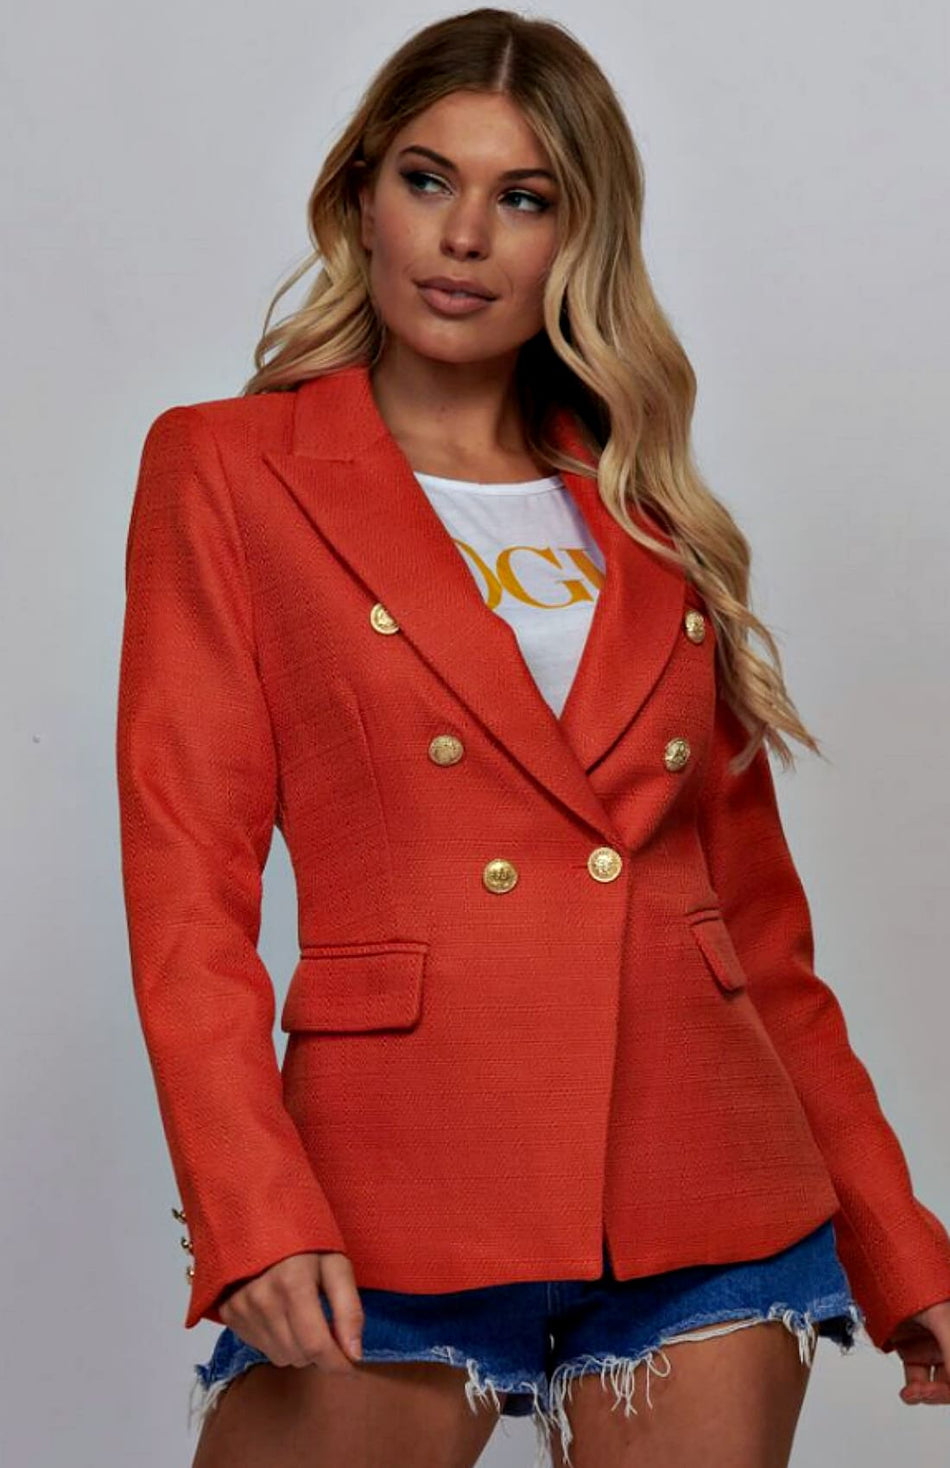 Orange Zweireihiger Tweed-Blazer